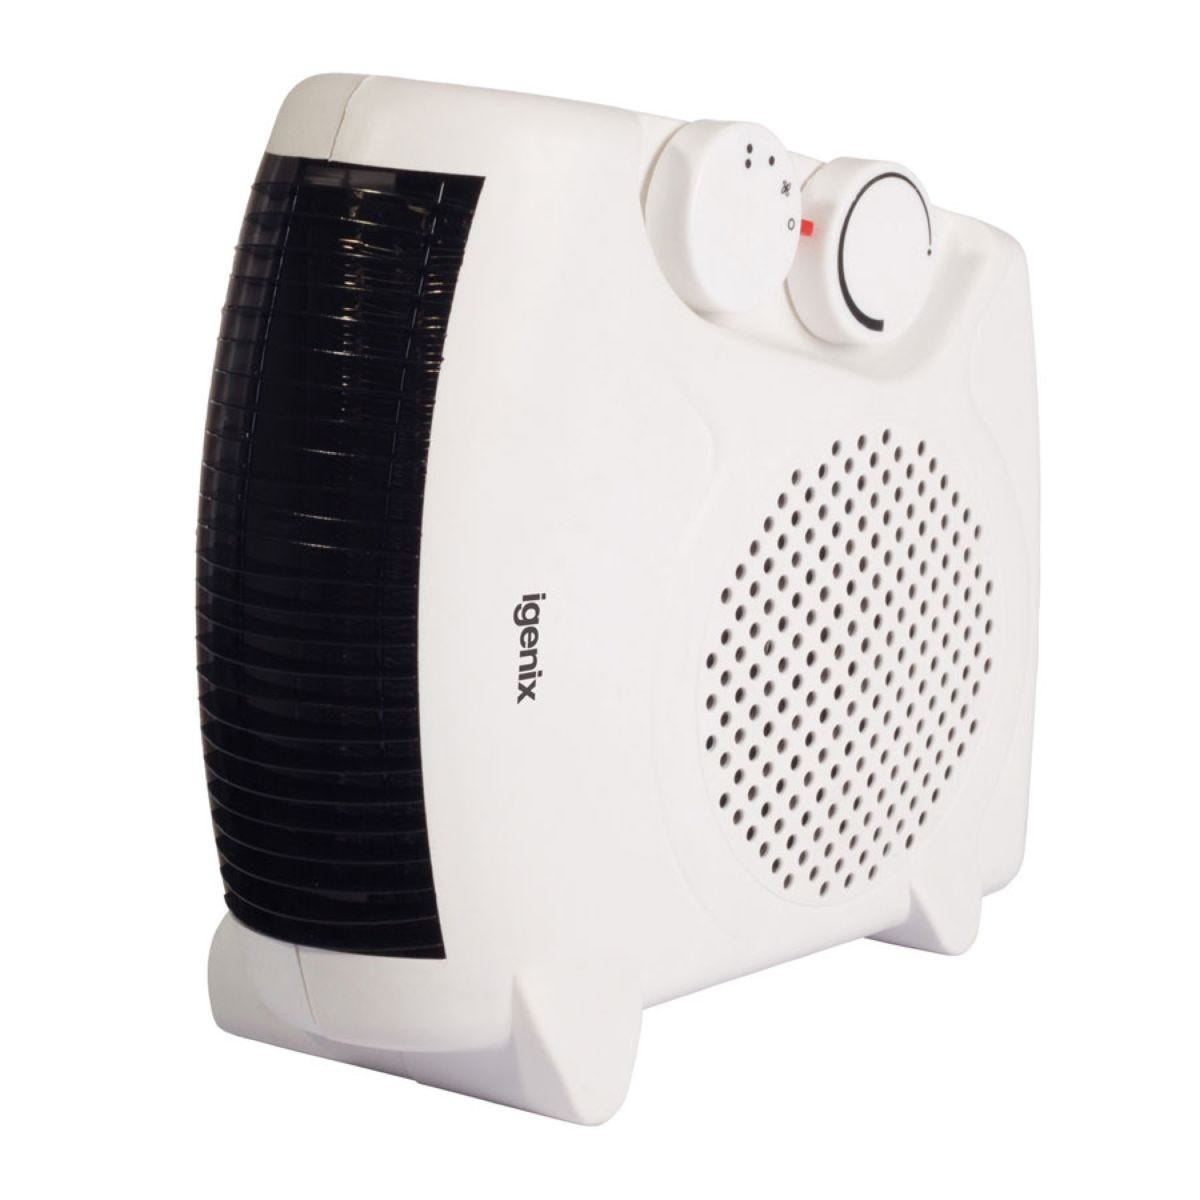 Igenix 2kW Upright and Flat Fan Heater with 2 Heat Settings